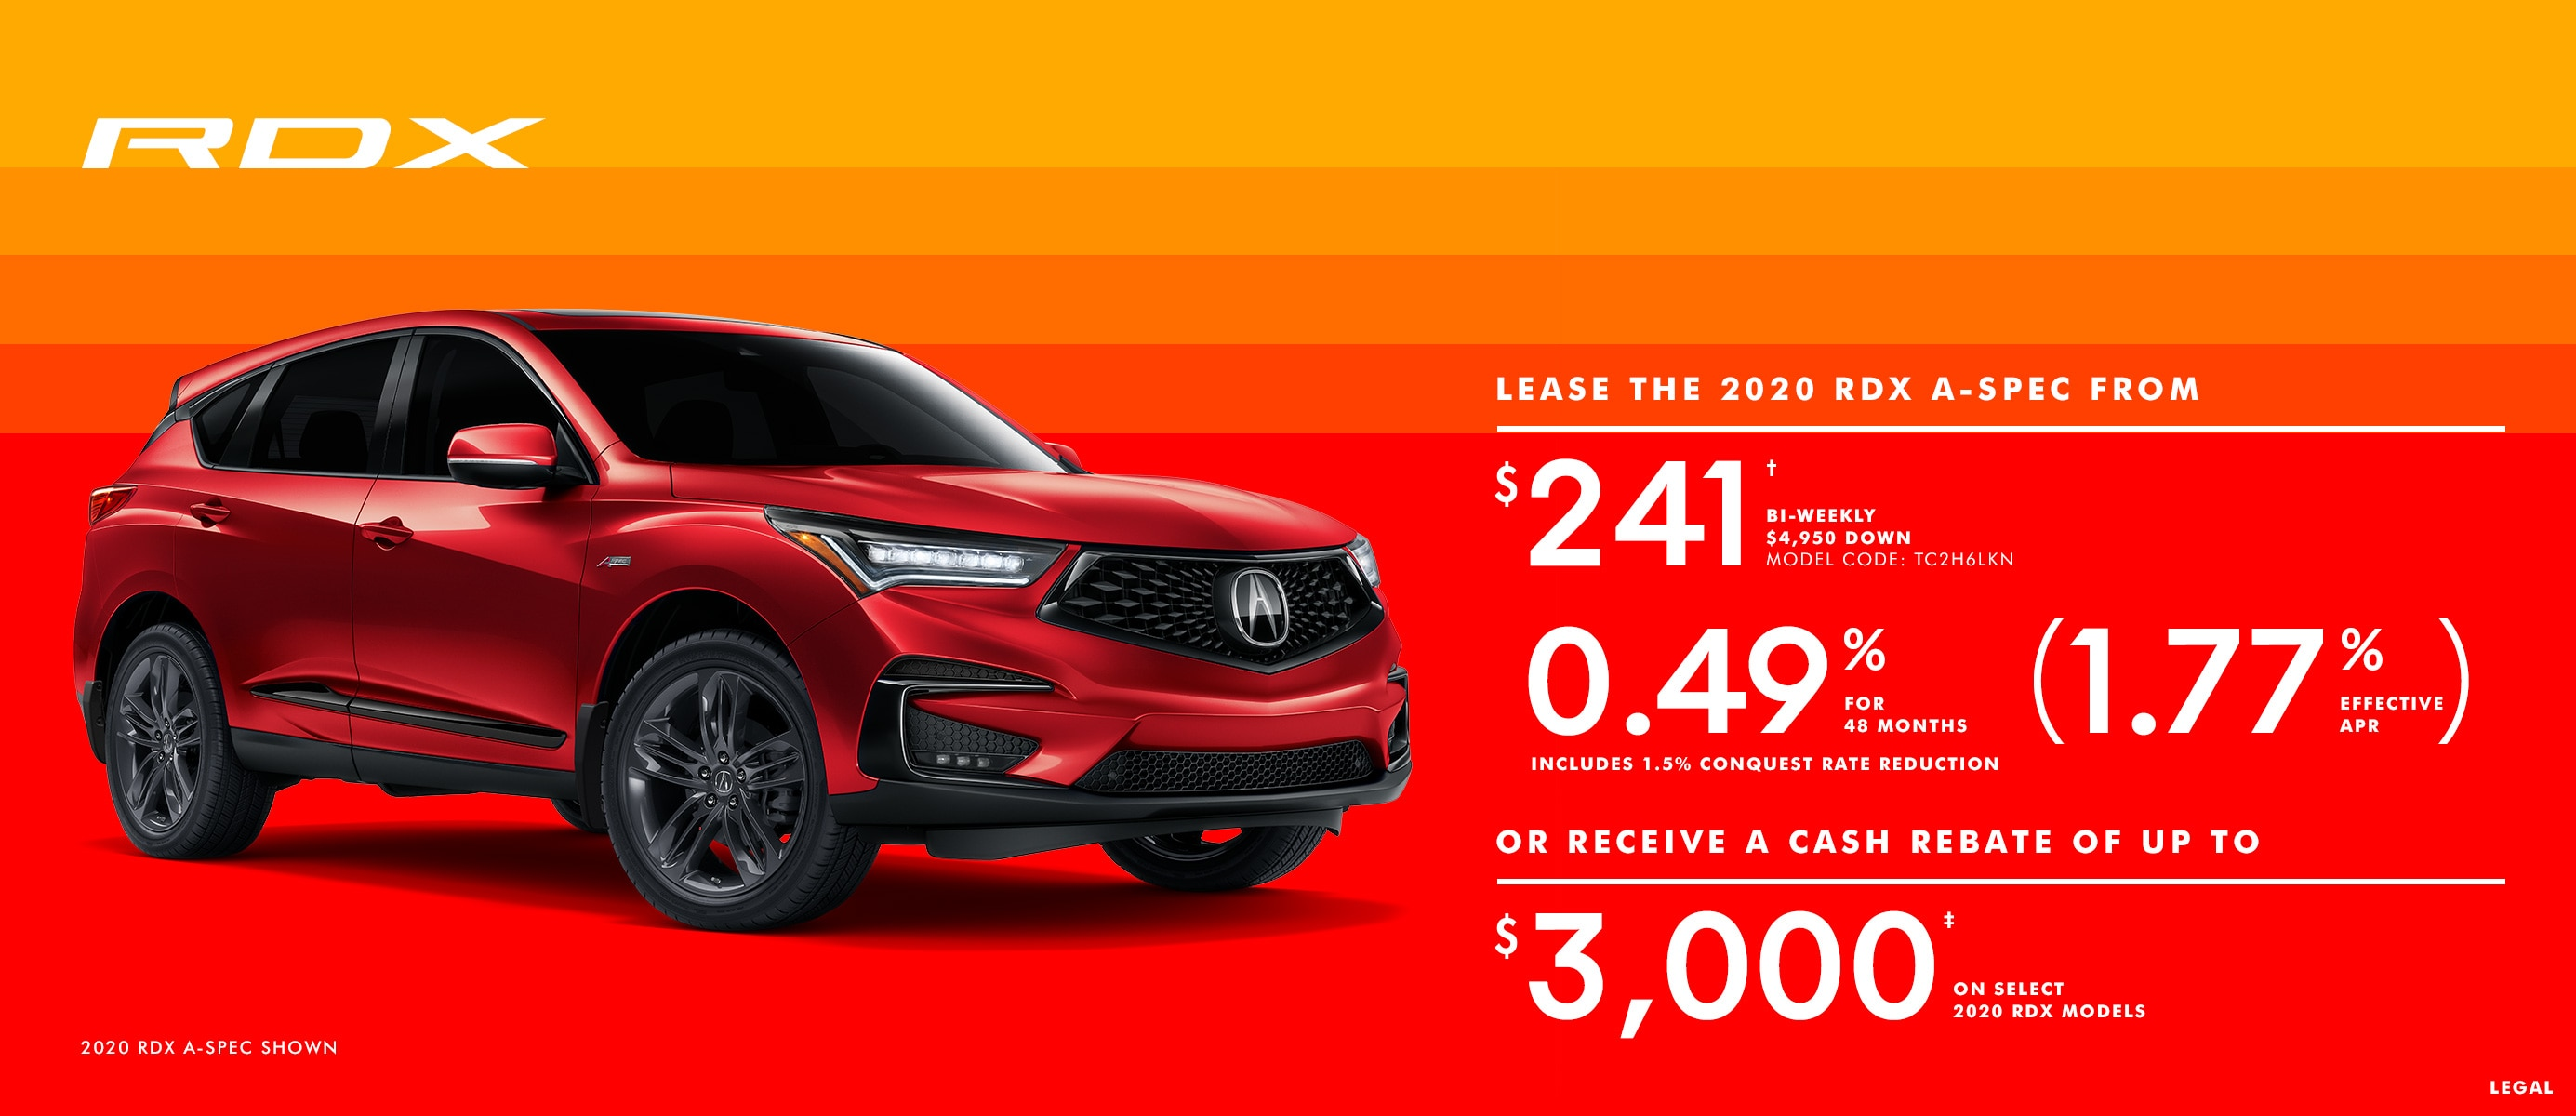 The All-New RDX